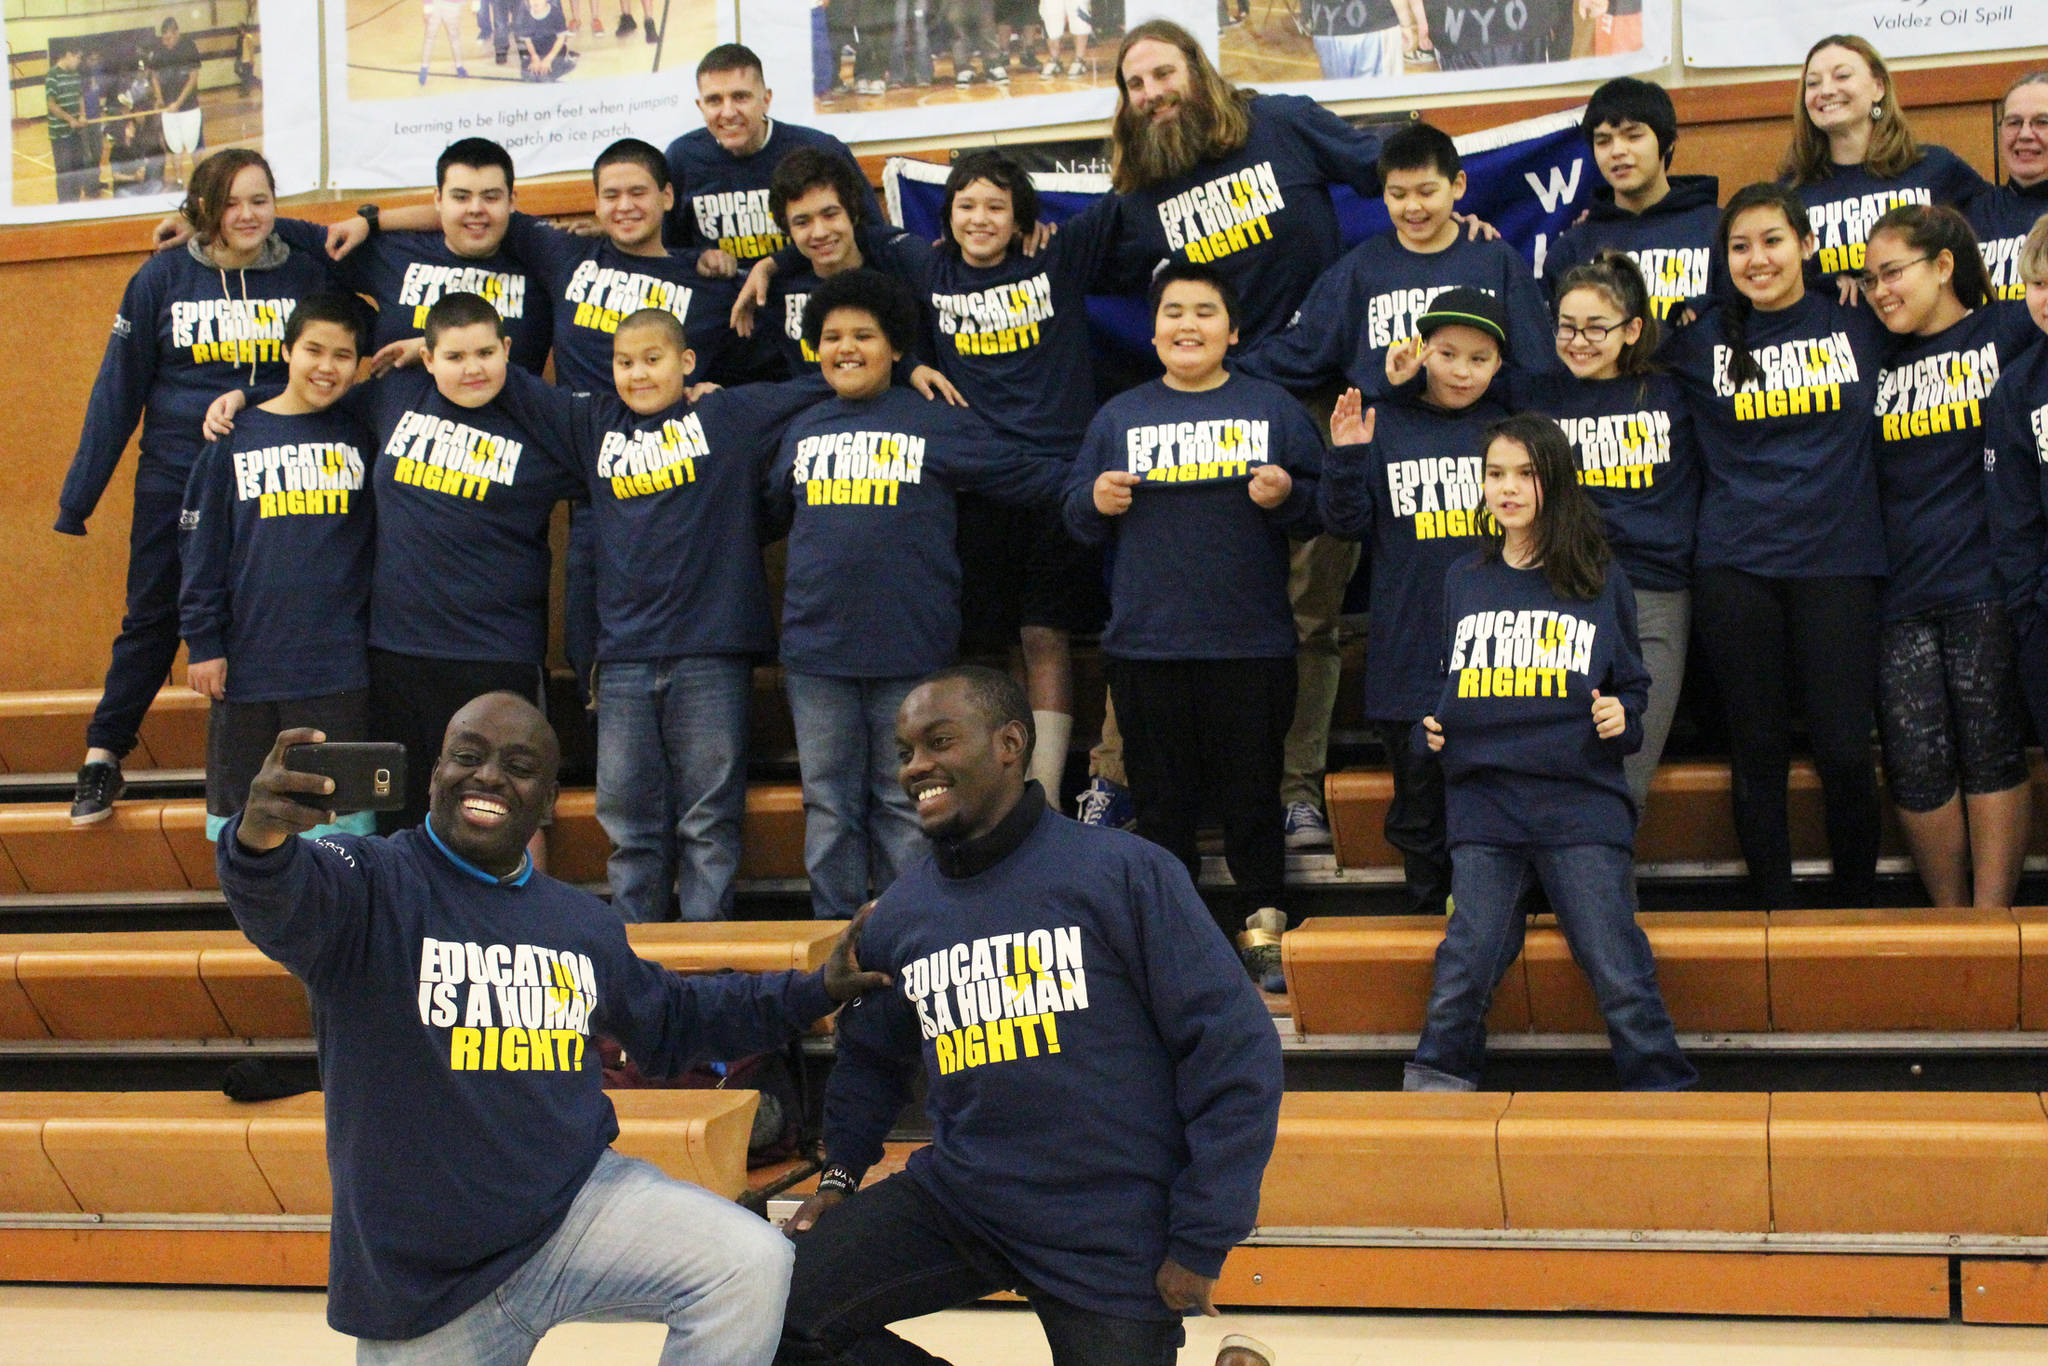 Chris Mburu, left, takes a selfie with Kimani Nyambura in front of several students from Port Graham School during a presentation there Thursday, Nov. 16, 2017 in Port Graham, Alaska. The pair spoke to students from four peninsula schools about the importance of education. Mburu and Nyambura are both from the same small village in Kenya, and were able to attend school through sponsorship. Mburu is not a human rights lawyer working for the United Nations. (Photo by Megan Pacer/Homer News)